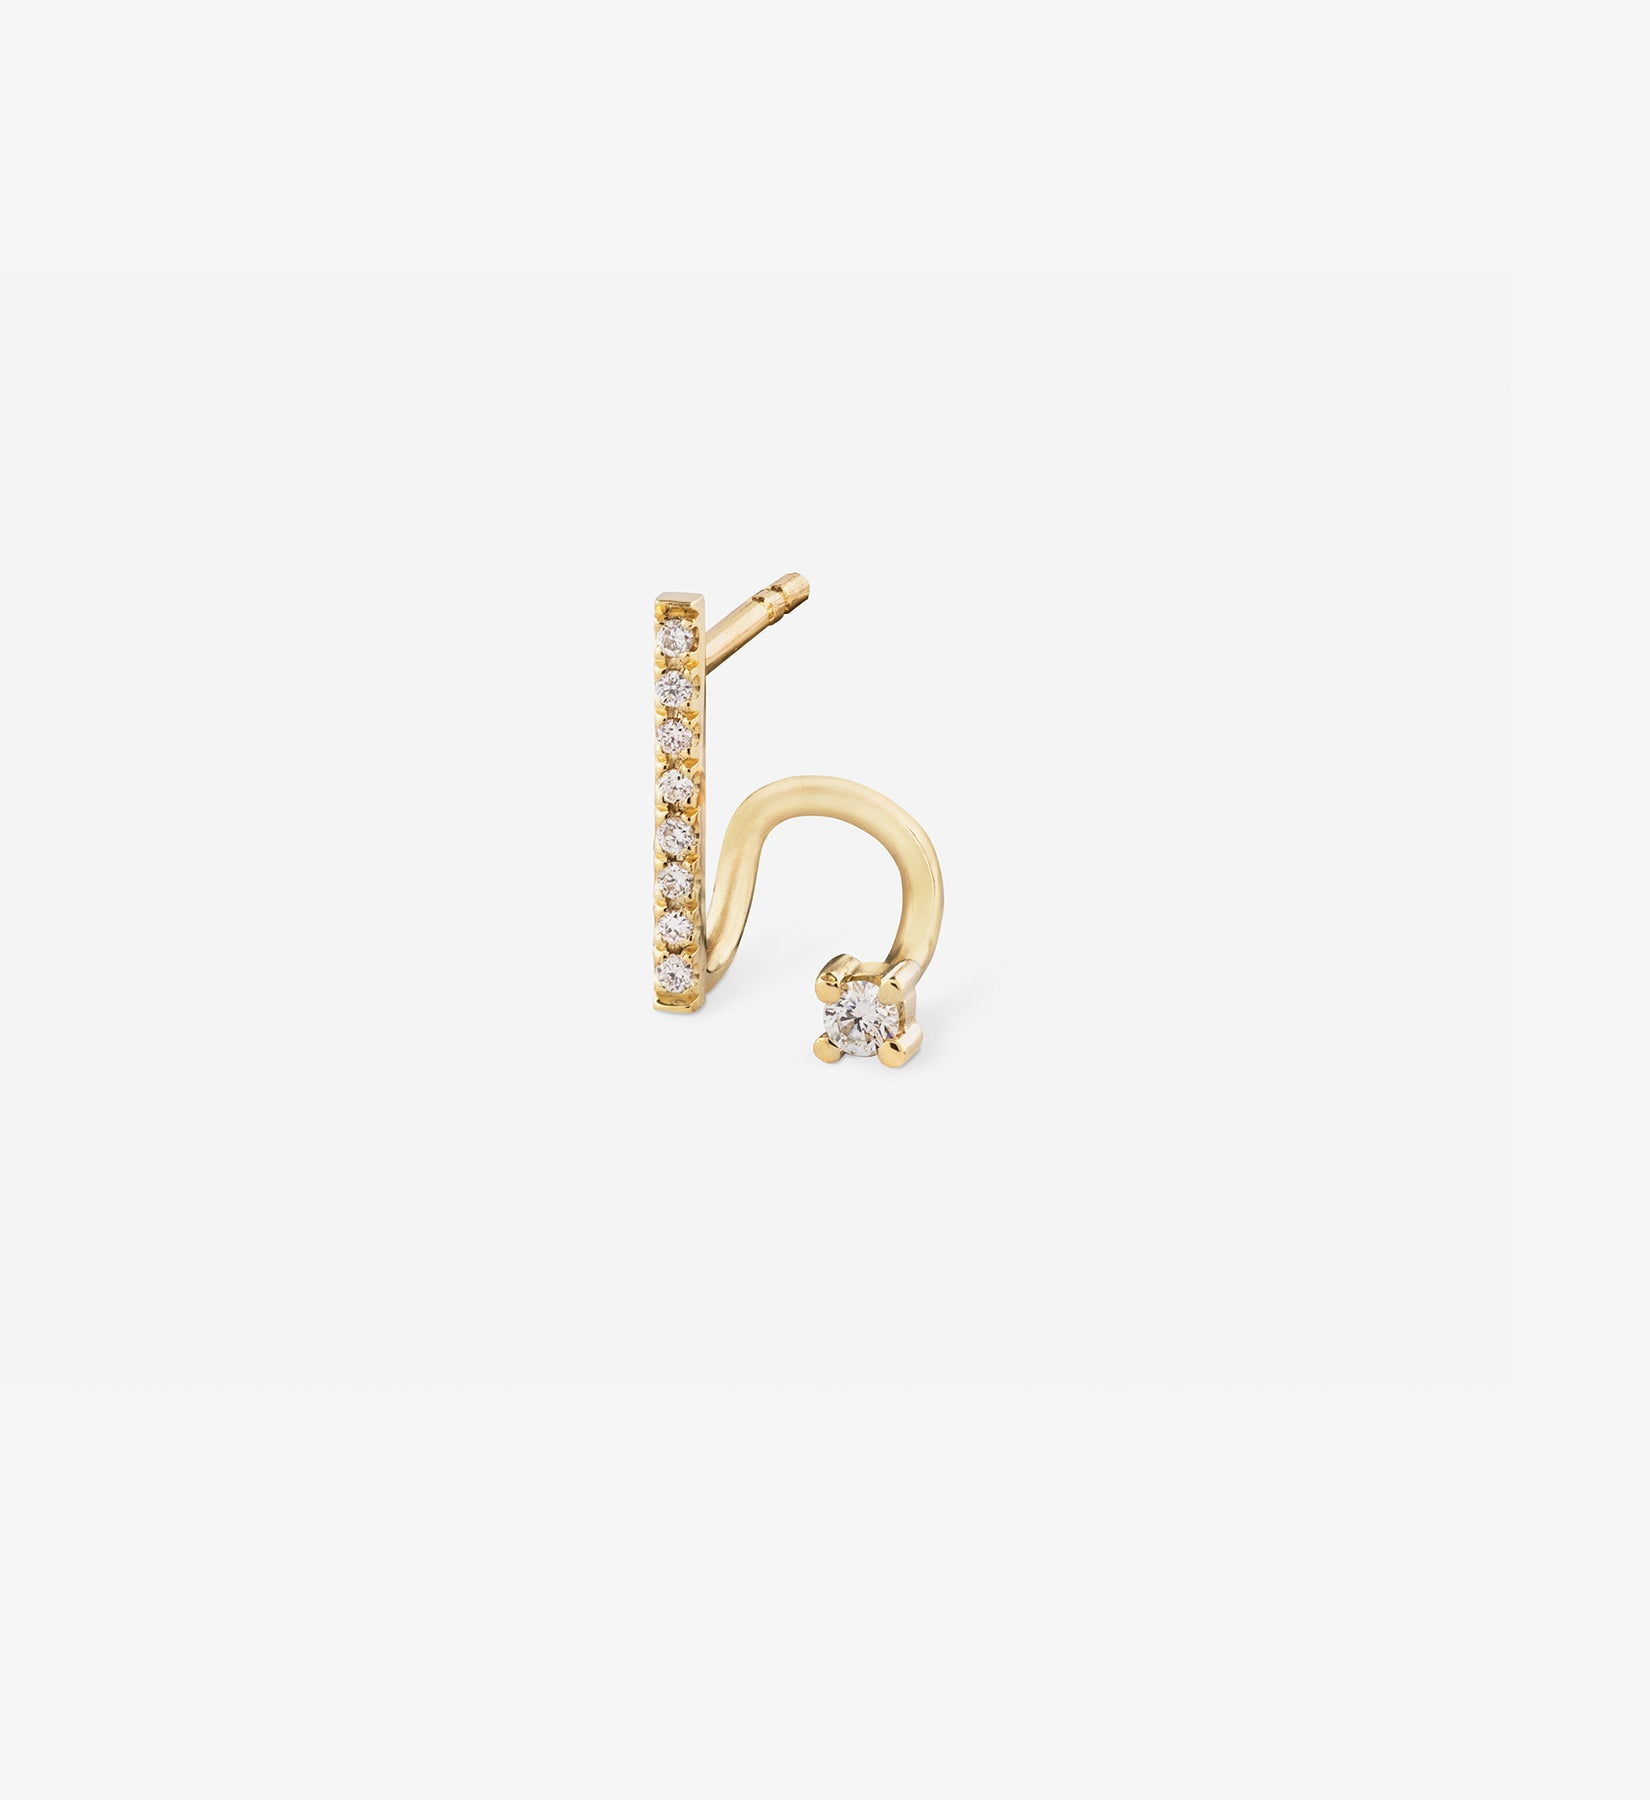 OUVERTURE, Fine jewelry, 14K gold, diamonds, golden ring, diamond ring, golden earring, diamond earring. Handcrafted jewelry. Designed in Berlin. Honestly priced. Demifine. Earparty. Stacking rings. Diamond Huggie, Huggie earring, golden huggie earring. Spiral earring.